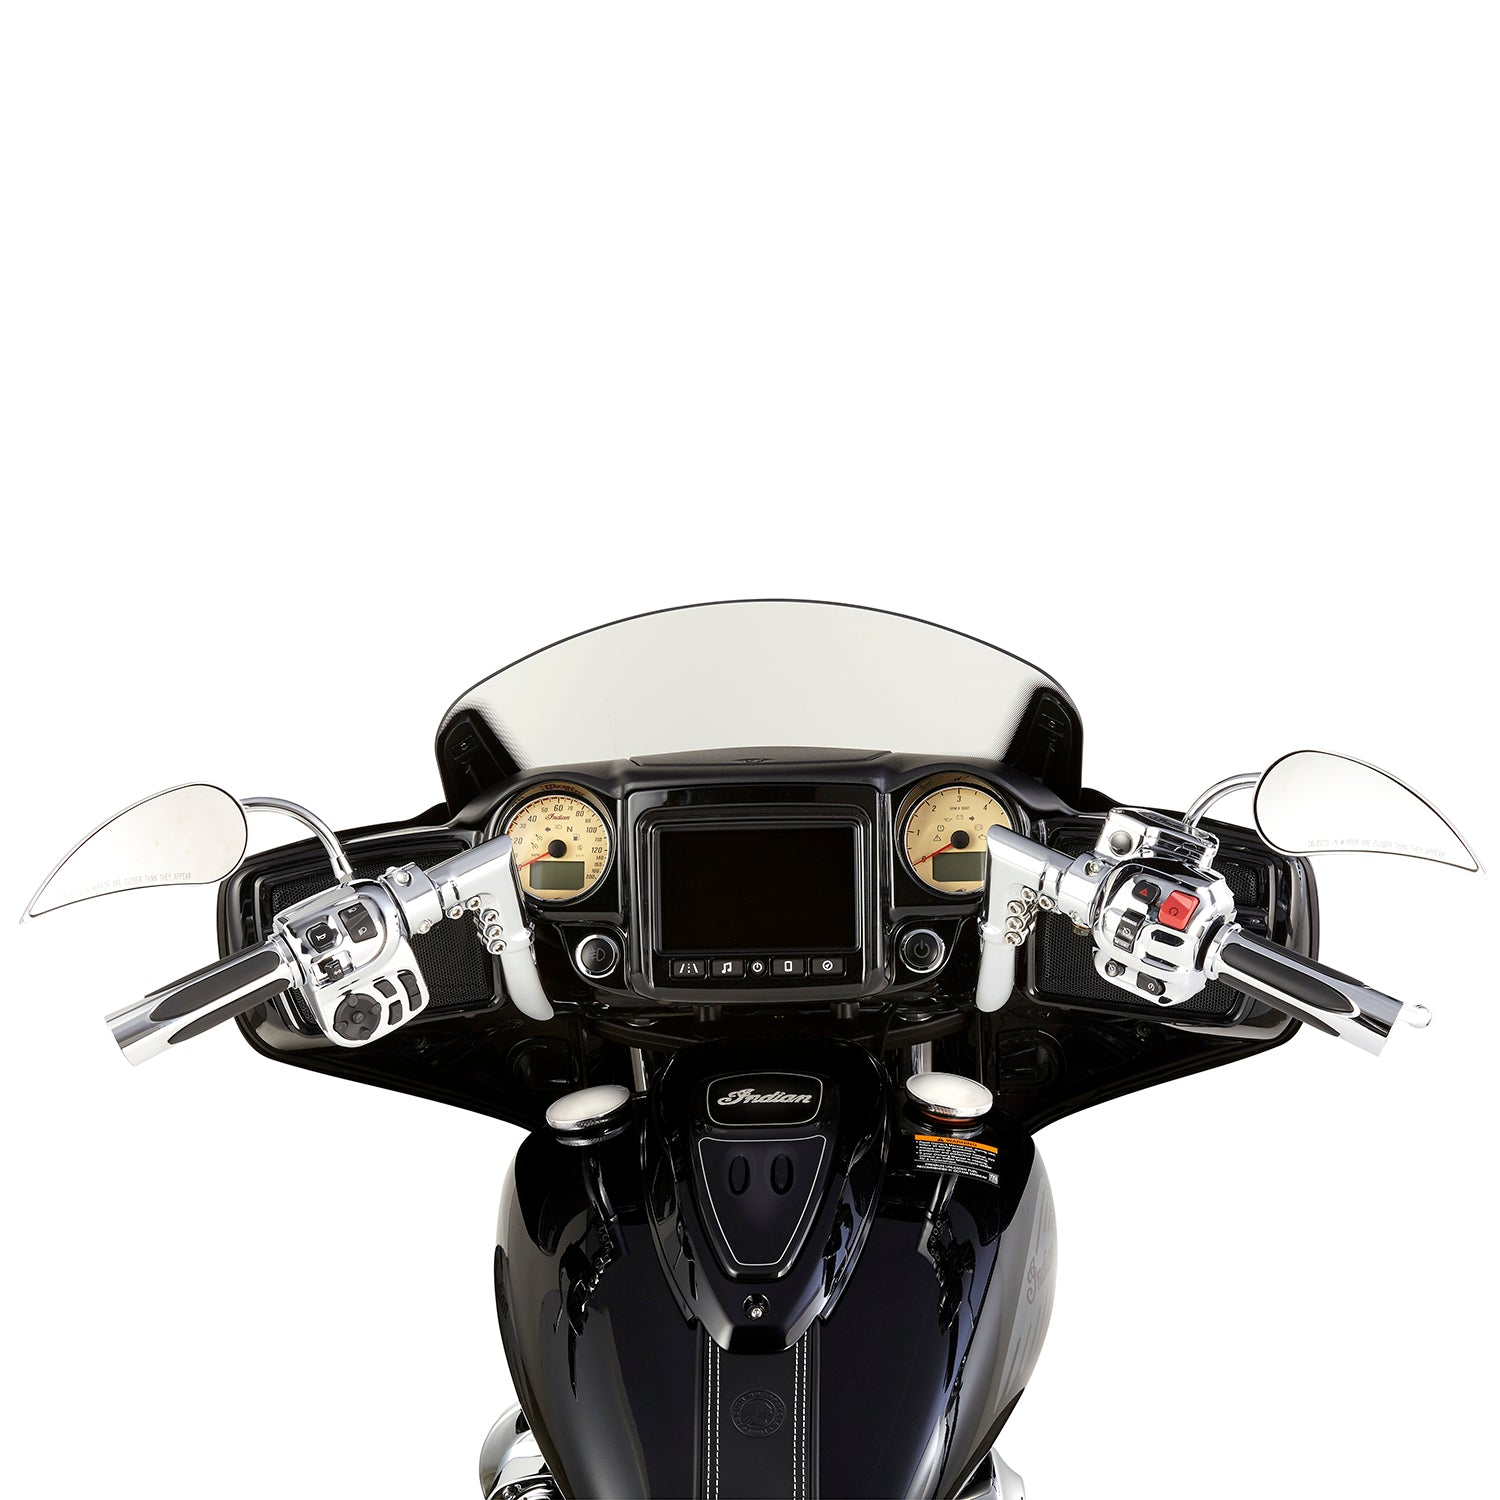 Modular Handlebars for Chieftain™, Chrome